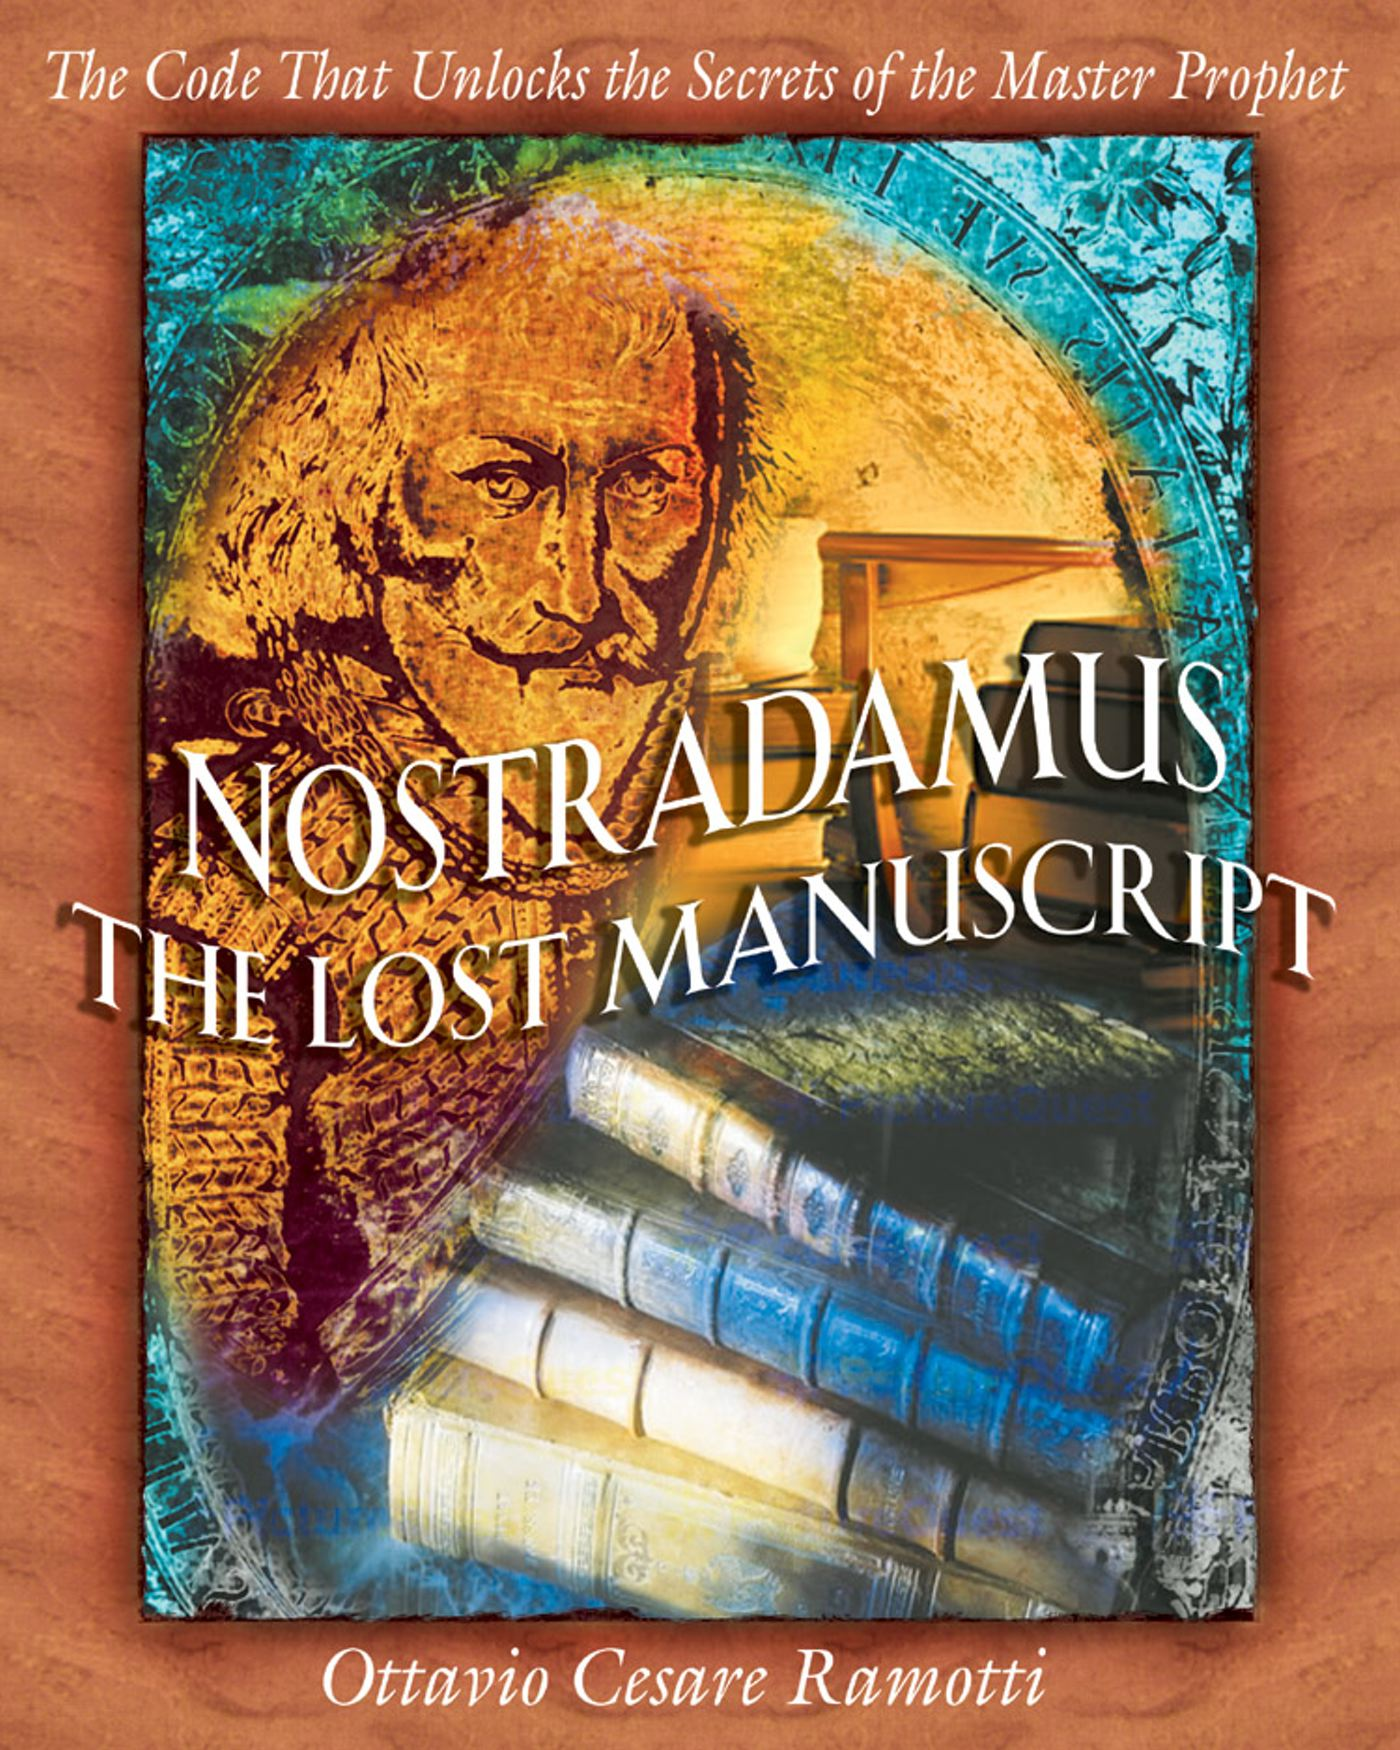 Nostradamus-the-lost-manuscript-9780892819157_hr